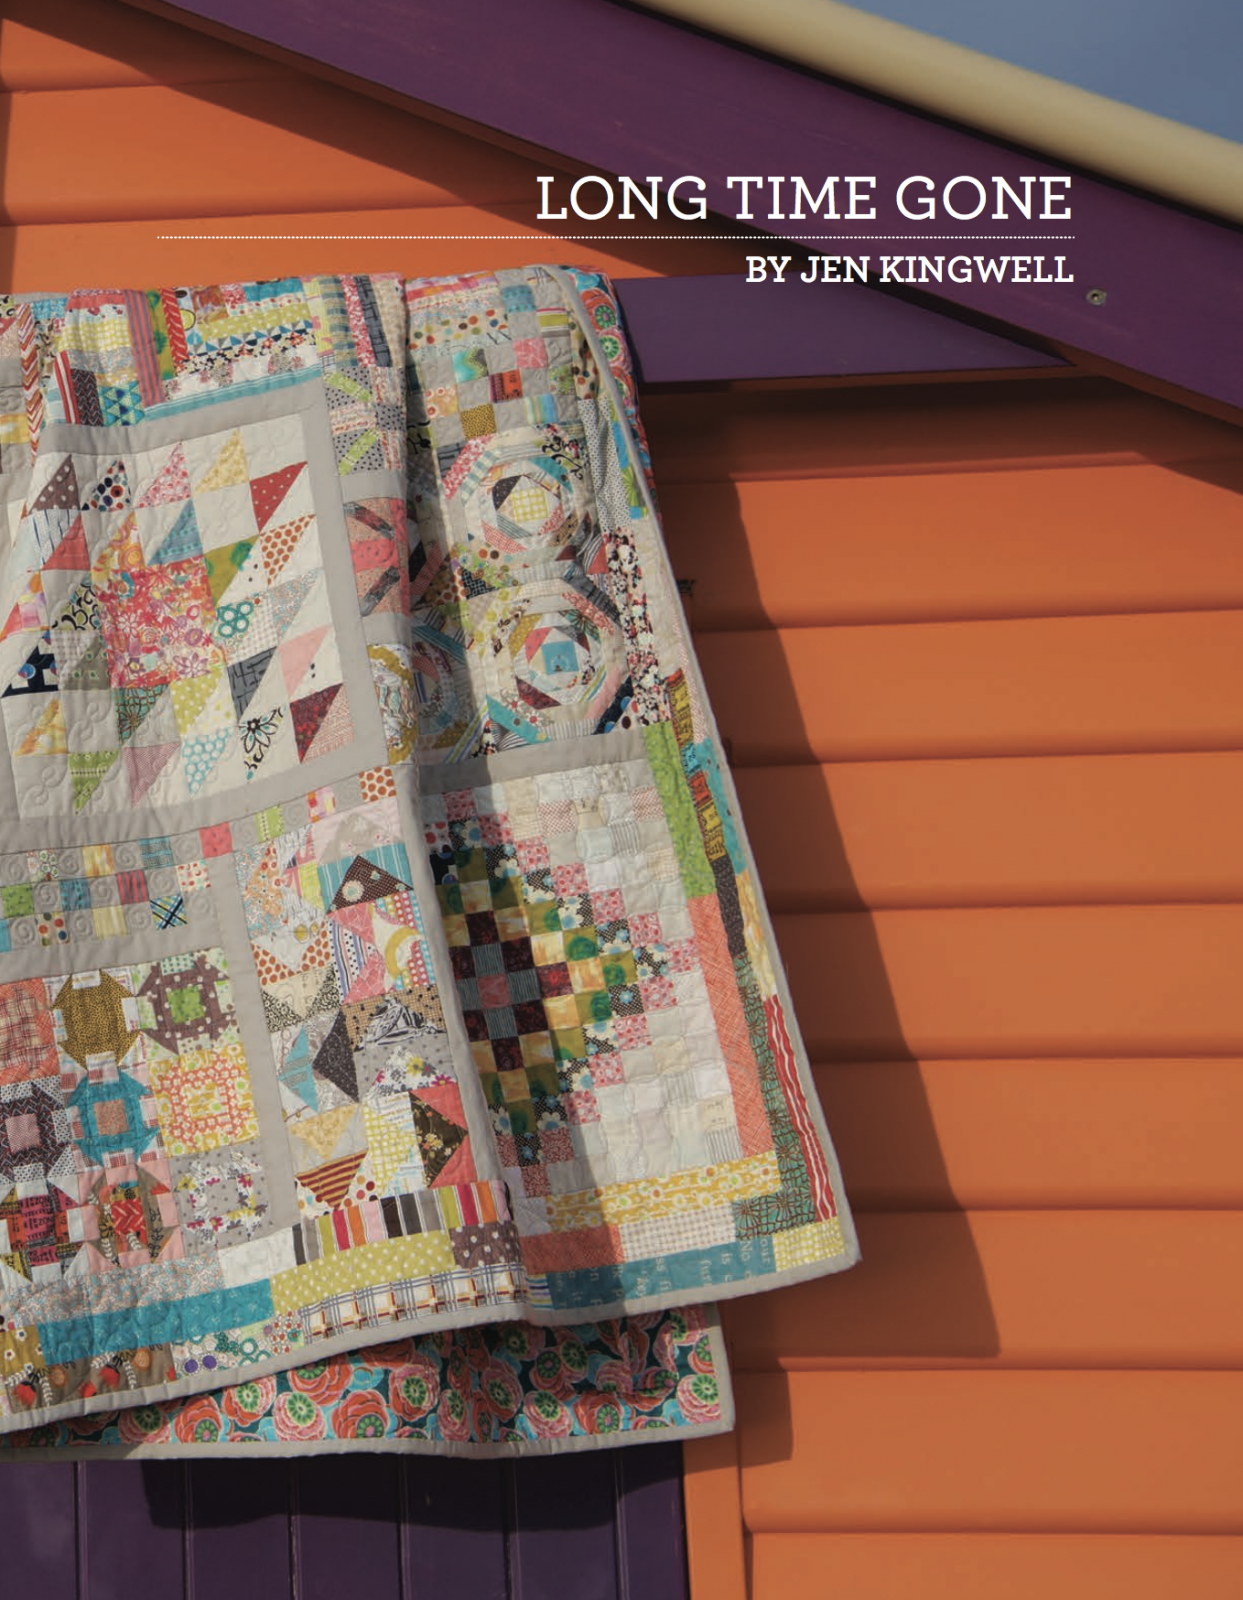 Long Time Gone Booklet by Jen Kingwell